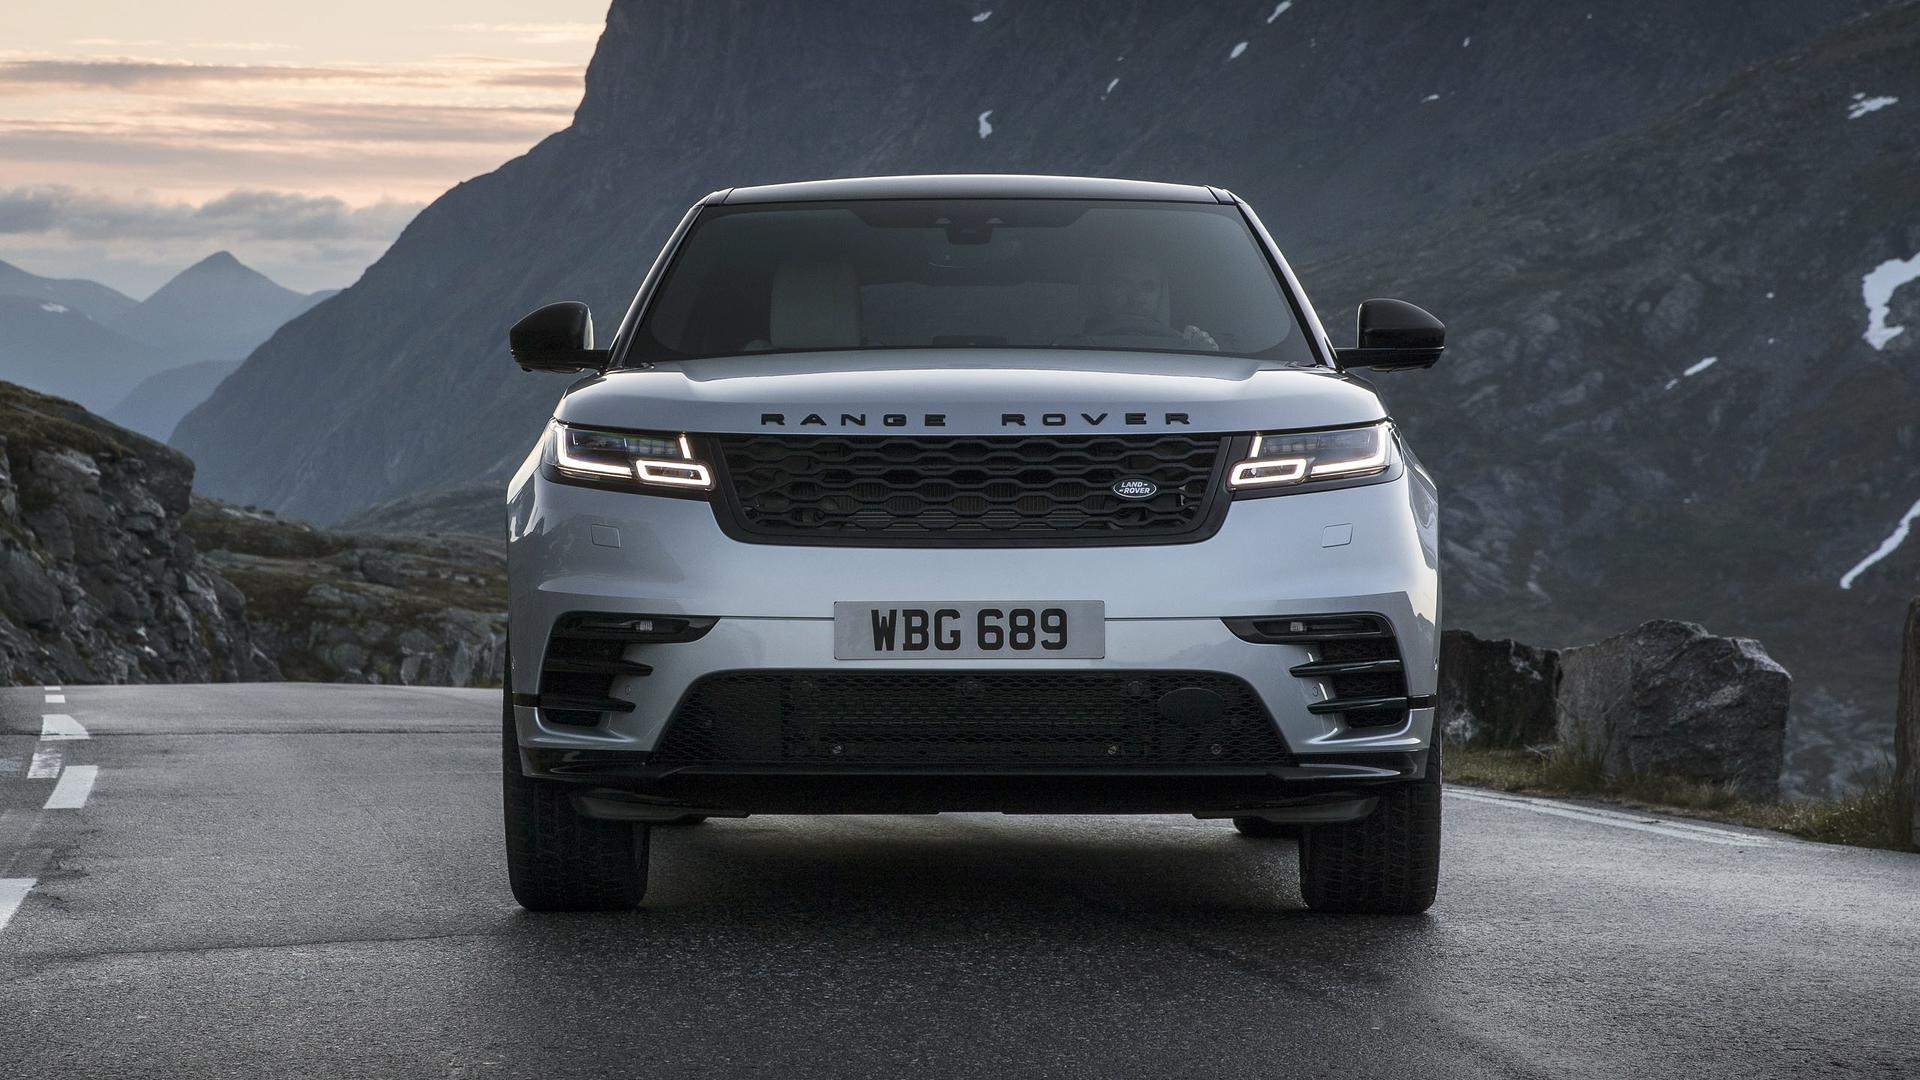 Range Rover Rugged Wagon Planned For 2020